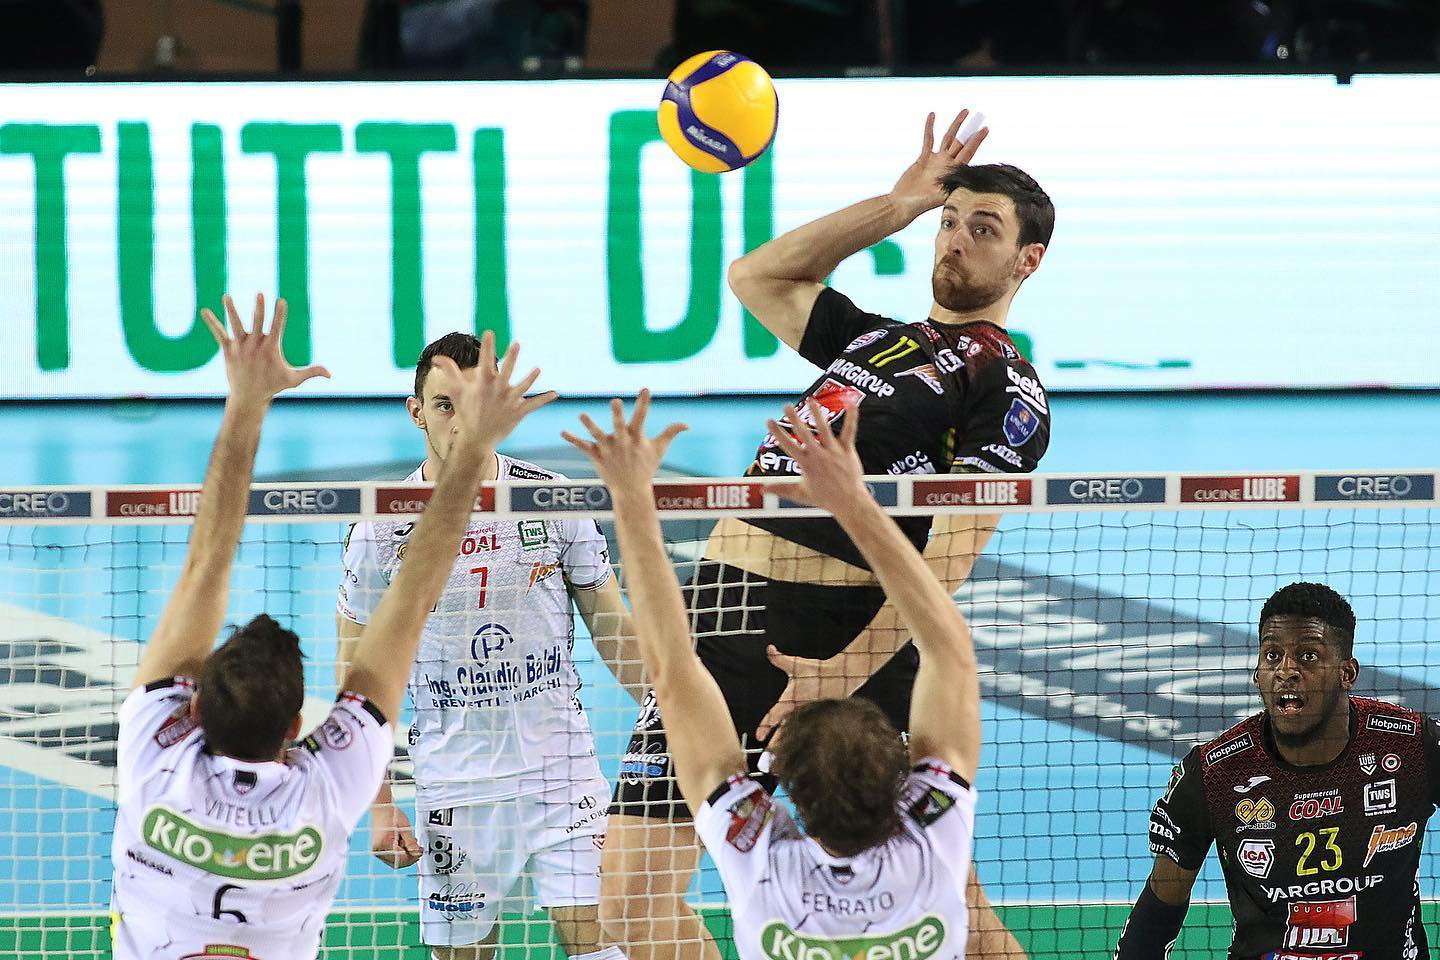 Volley, Civitanova vince Coppa Italia: 3-1 a Sir Perugia